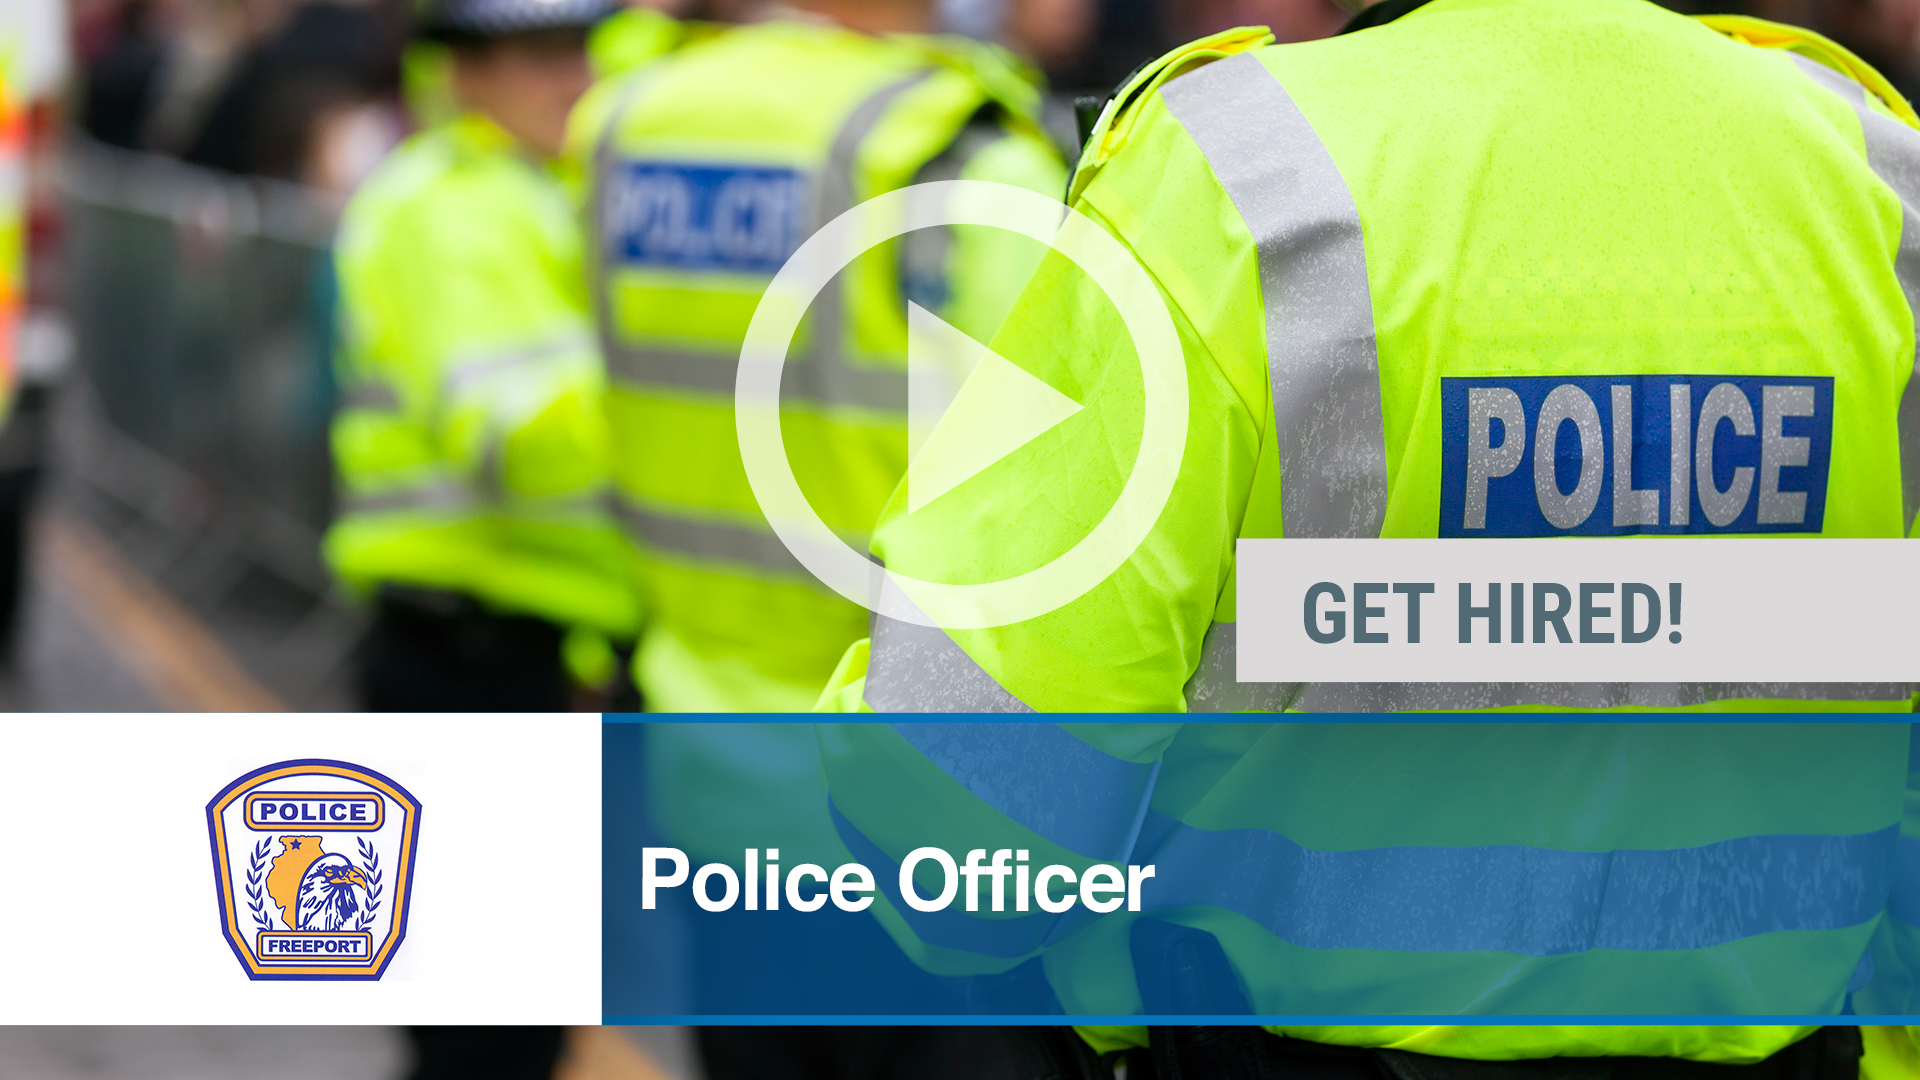 Watch our careers video for available job opening Police Officer in Freeport, IL